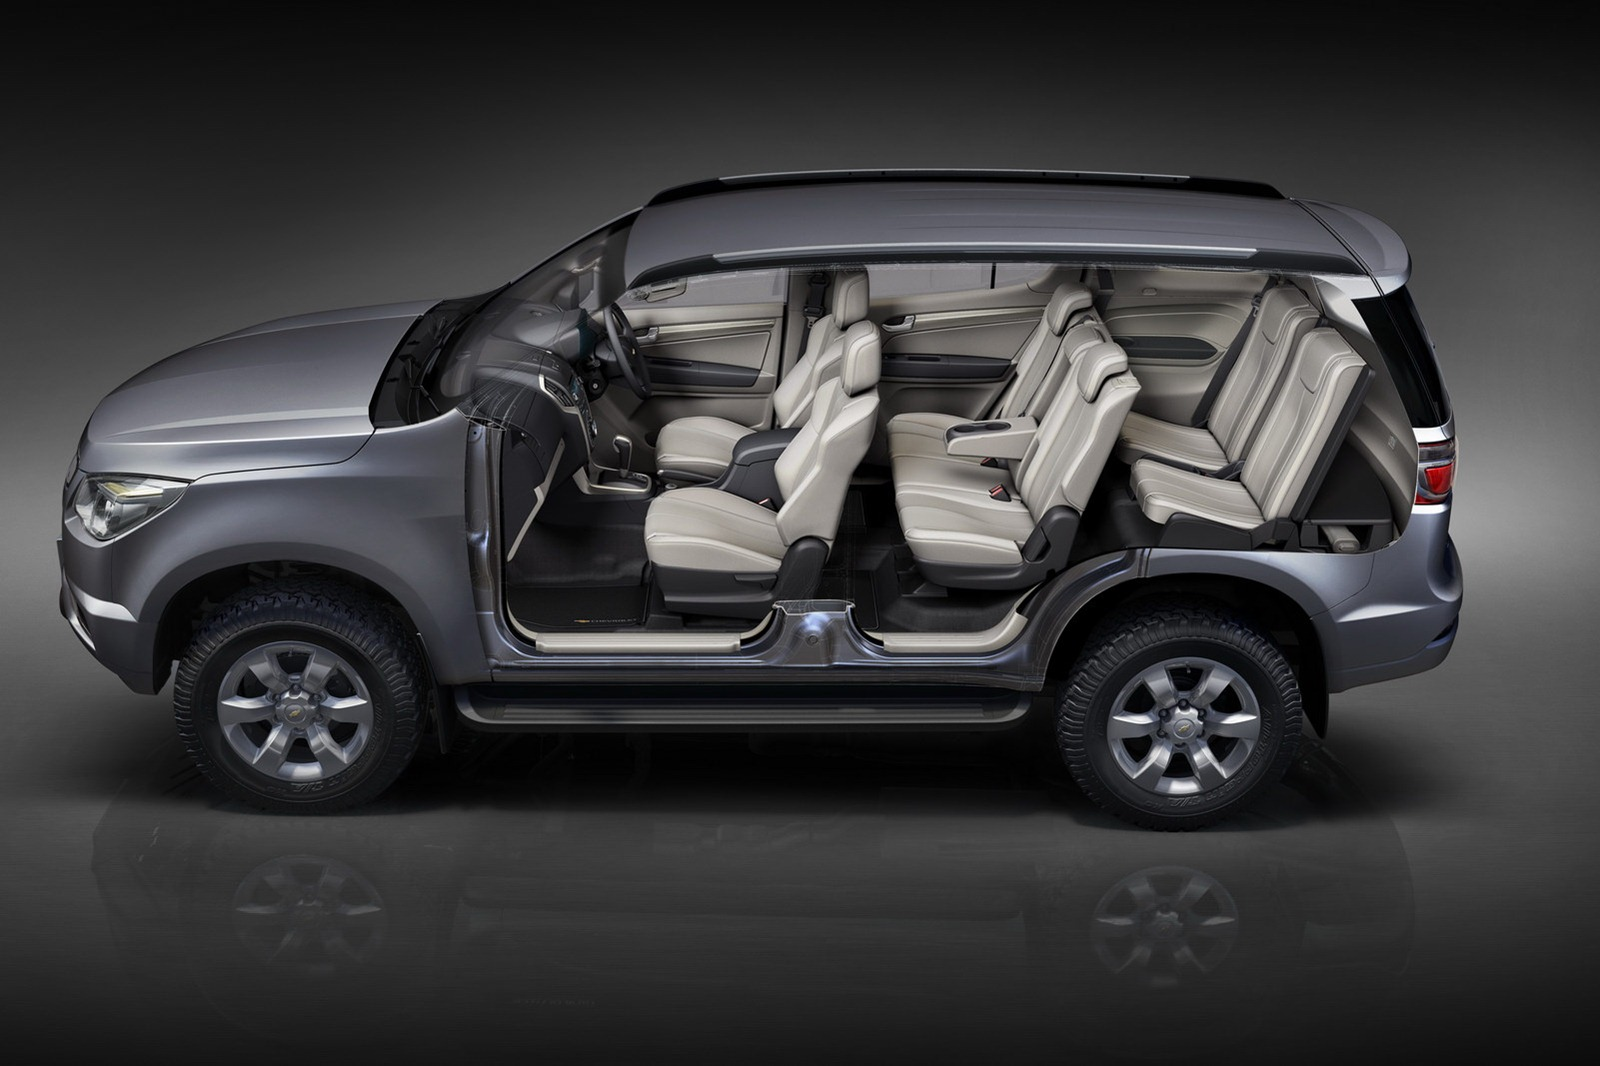 New 2013 Chevrolet Trailblazer Presented, US Launch ...